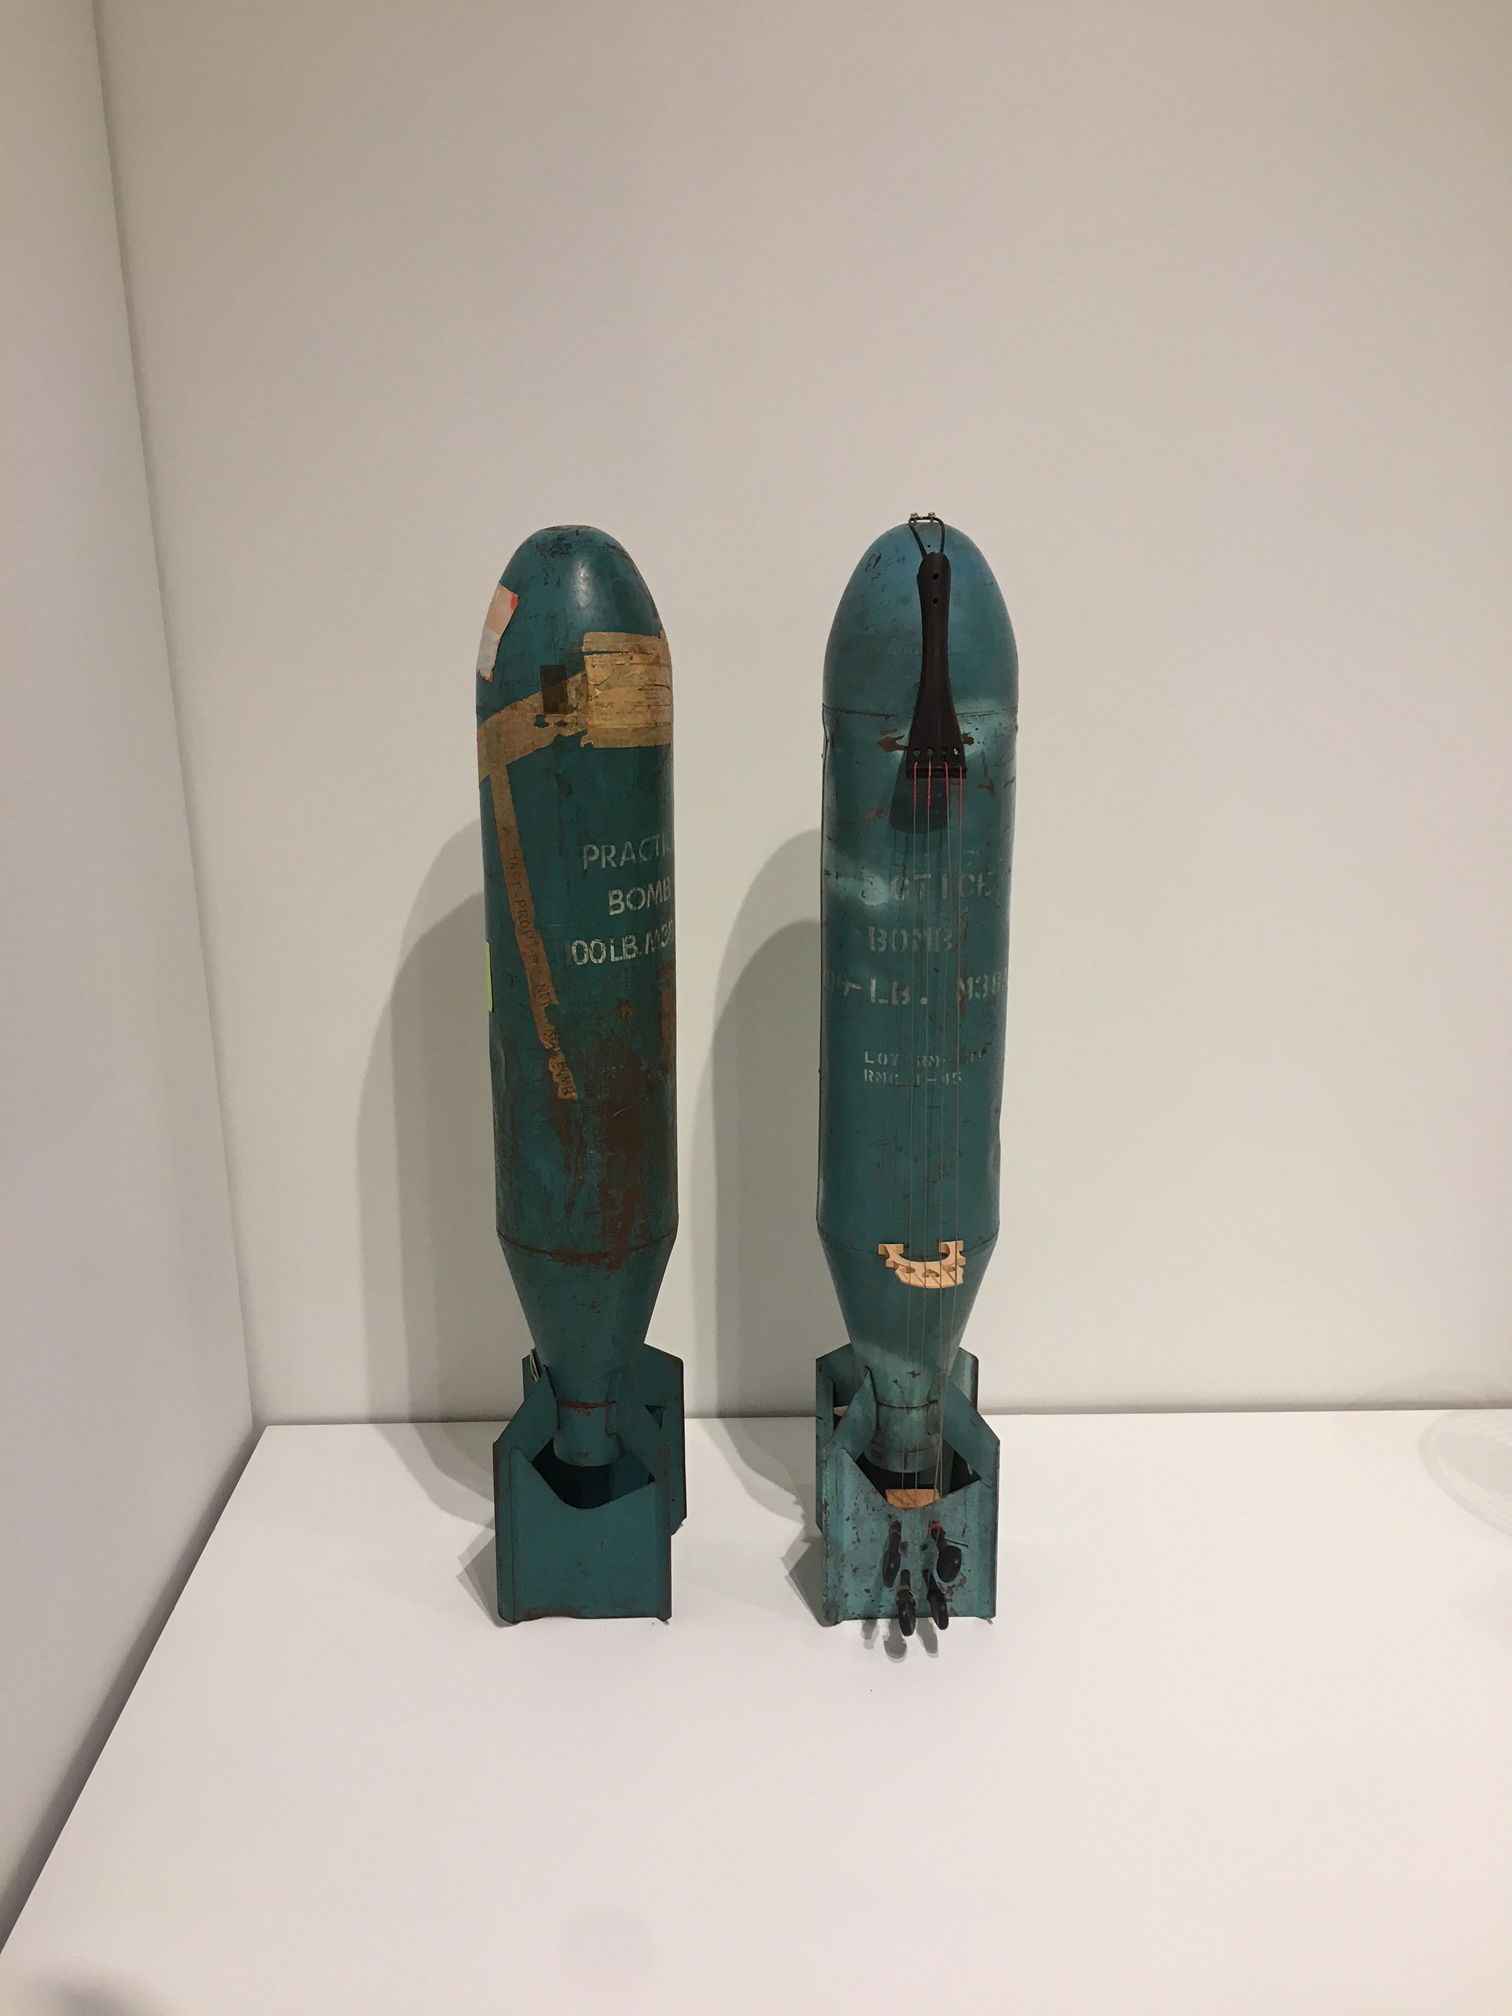 Bomb Cello, Charlotte Moorman, 1965 (left) Bomb Cello, c. 1990 (right). Paint and mixed media on metal, 48 x 10 x 10 in. each. Courtesy Sammlung Hoffmann, Berlin.